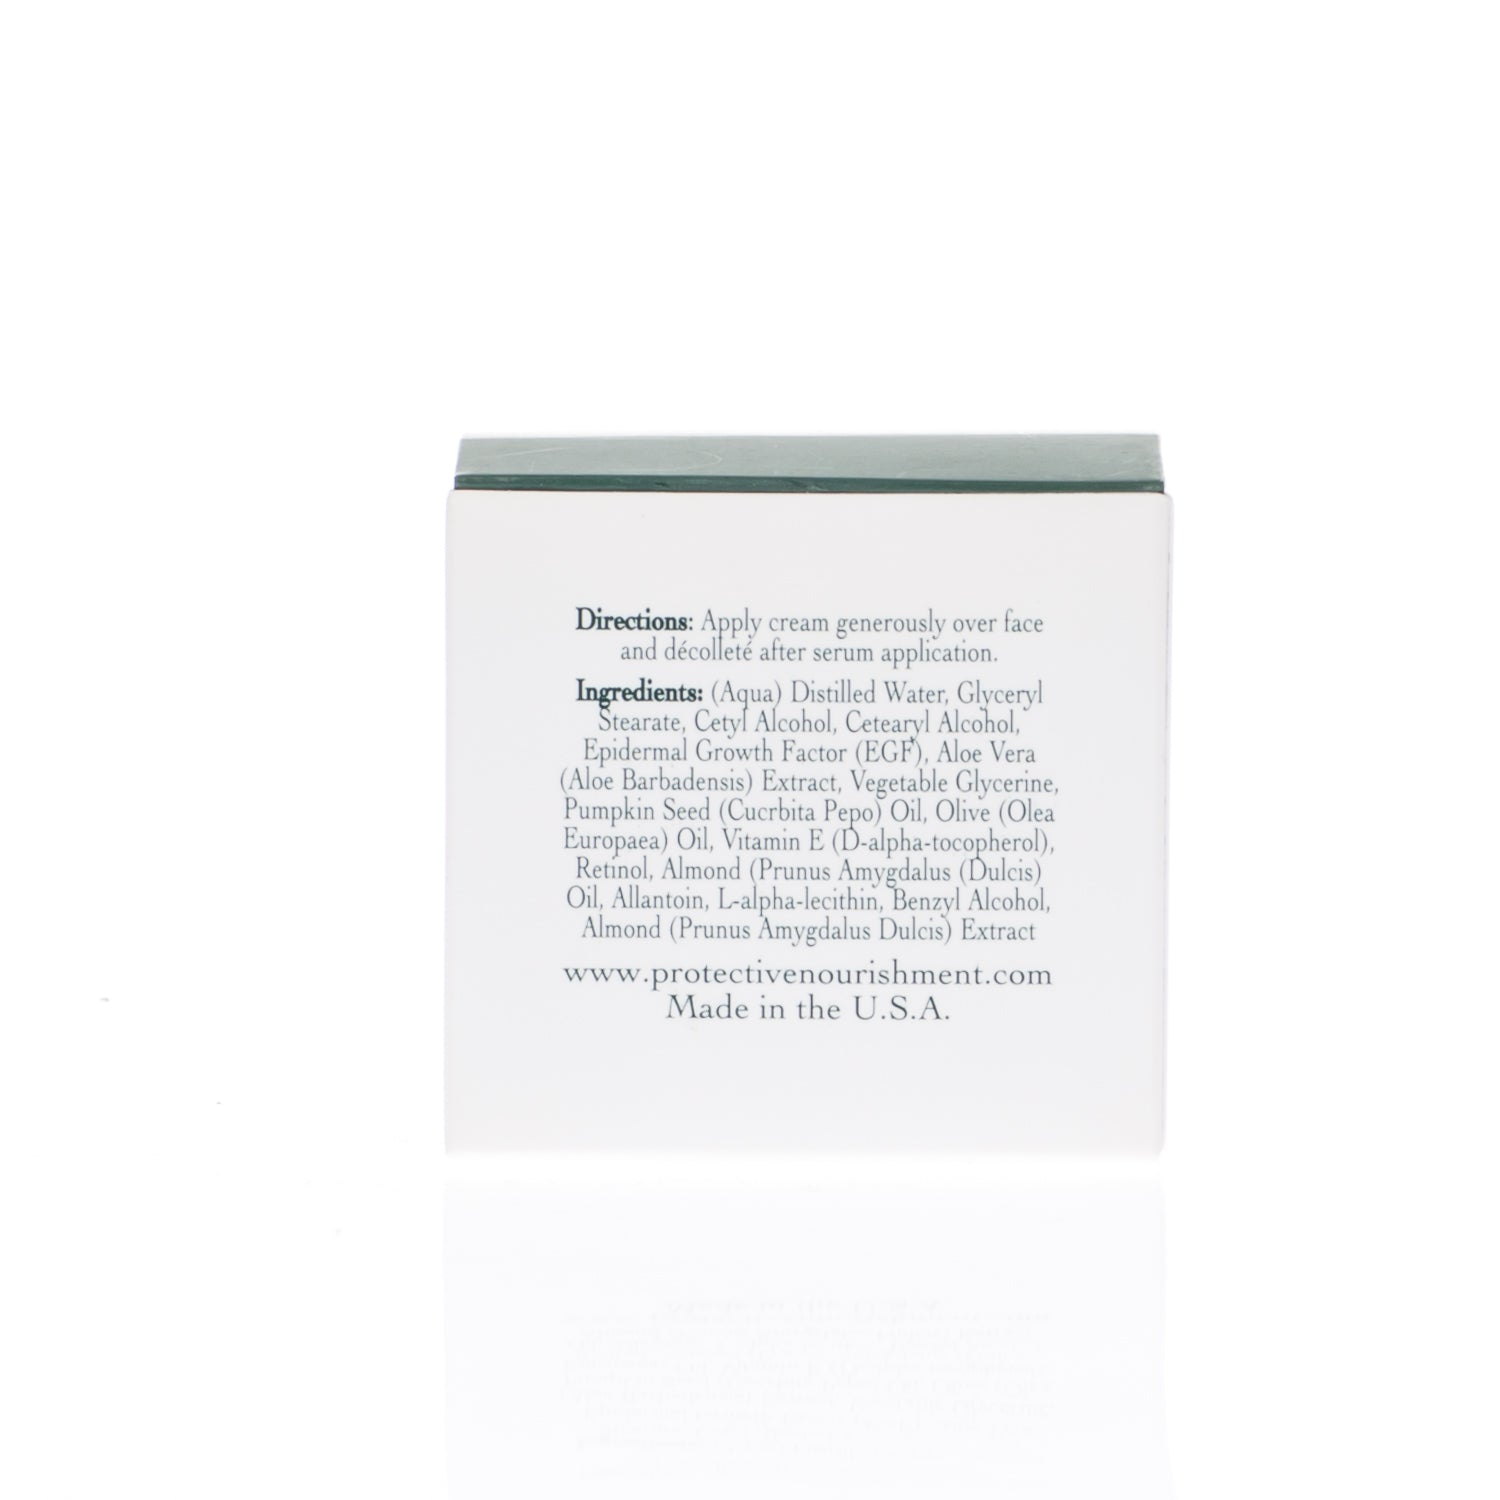 Daytime Replenishing Cream - Protective Nourishment